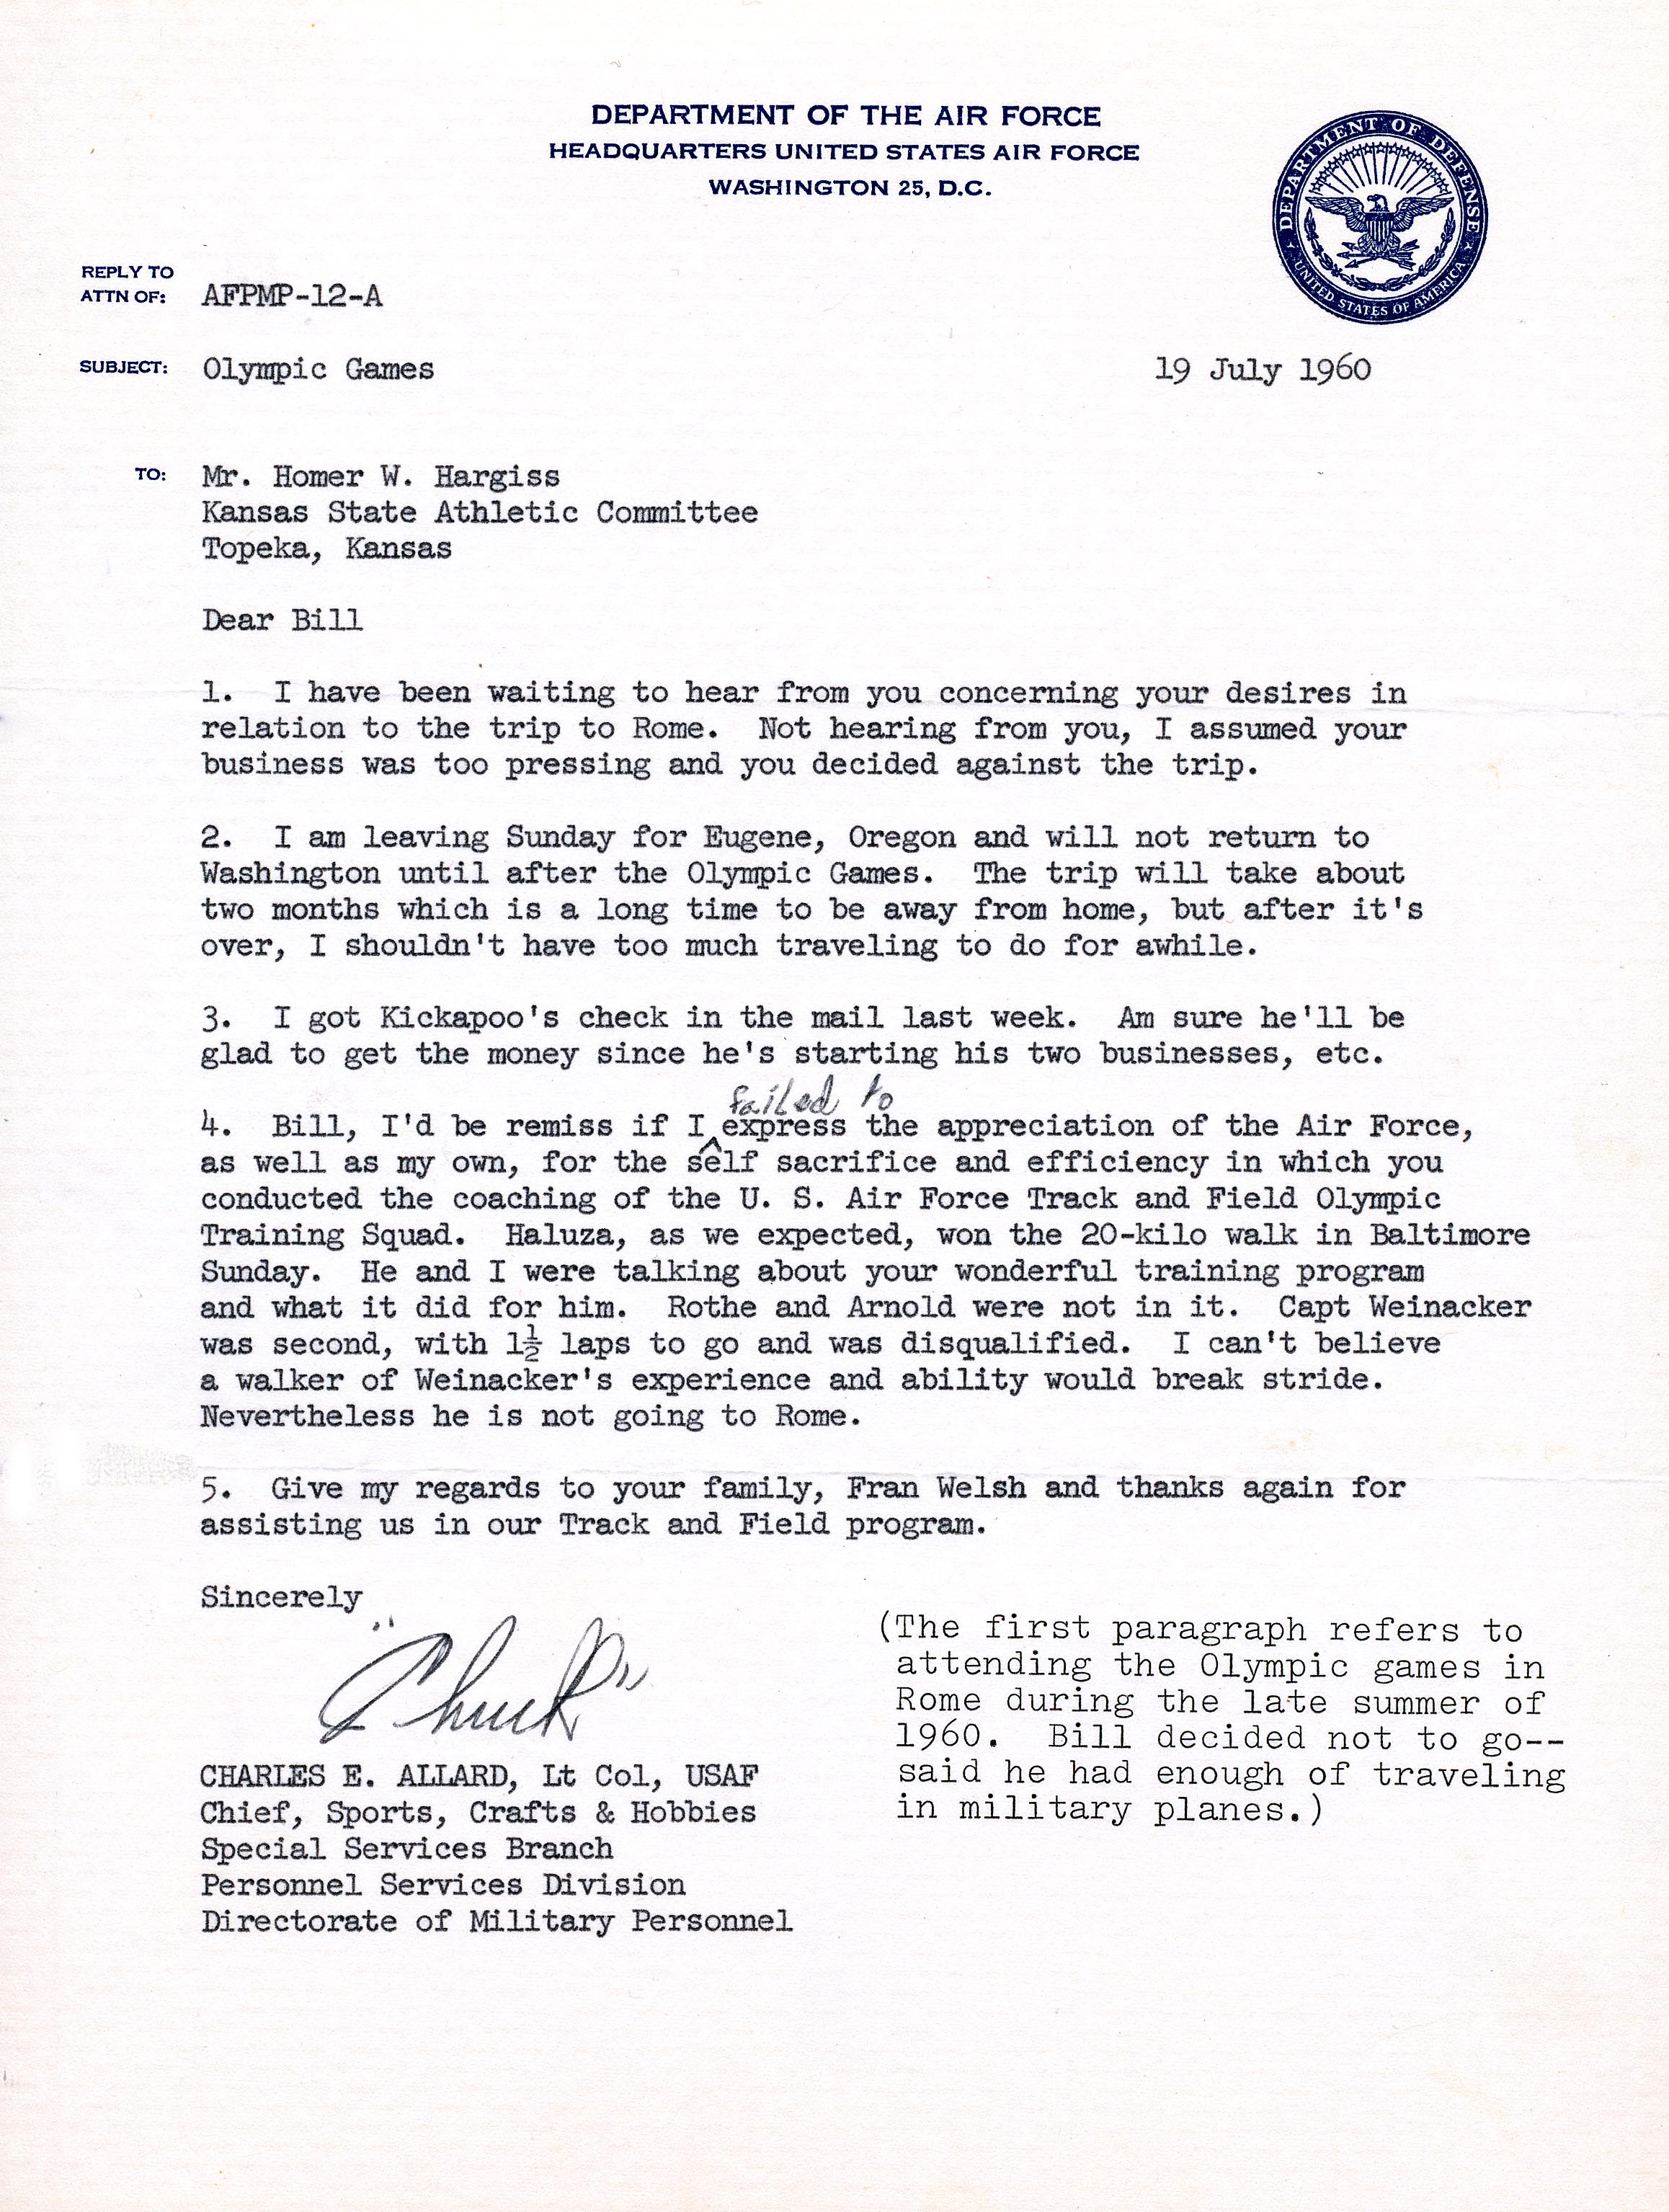 Letter of appreciation from USAF to Bill Hargiss 1960 z7IoRslU